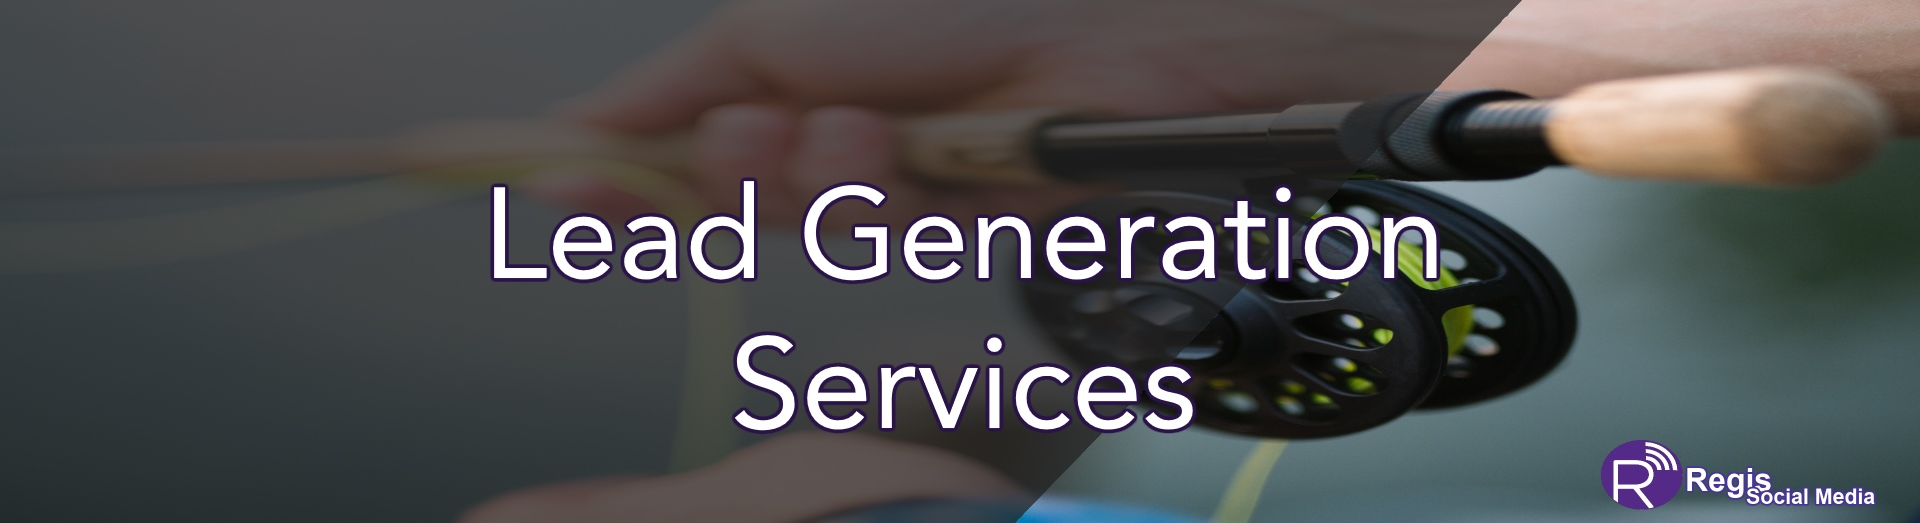 lead generation services banner